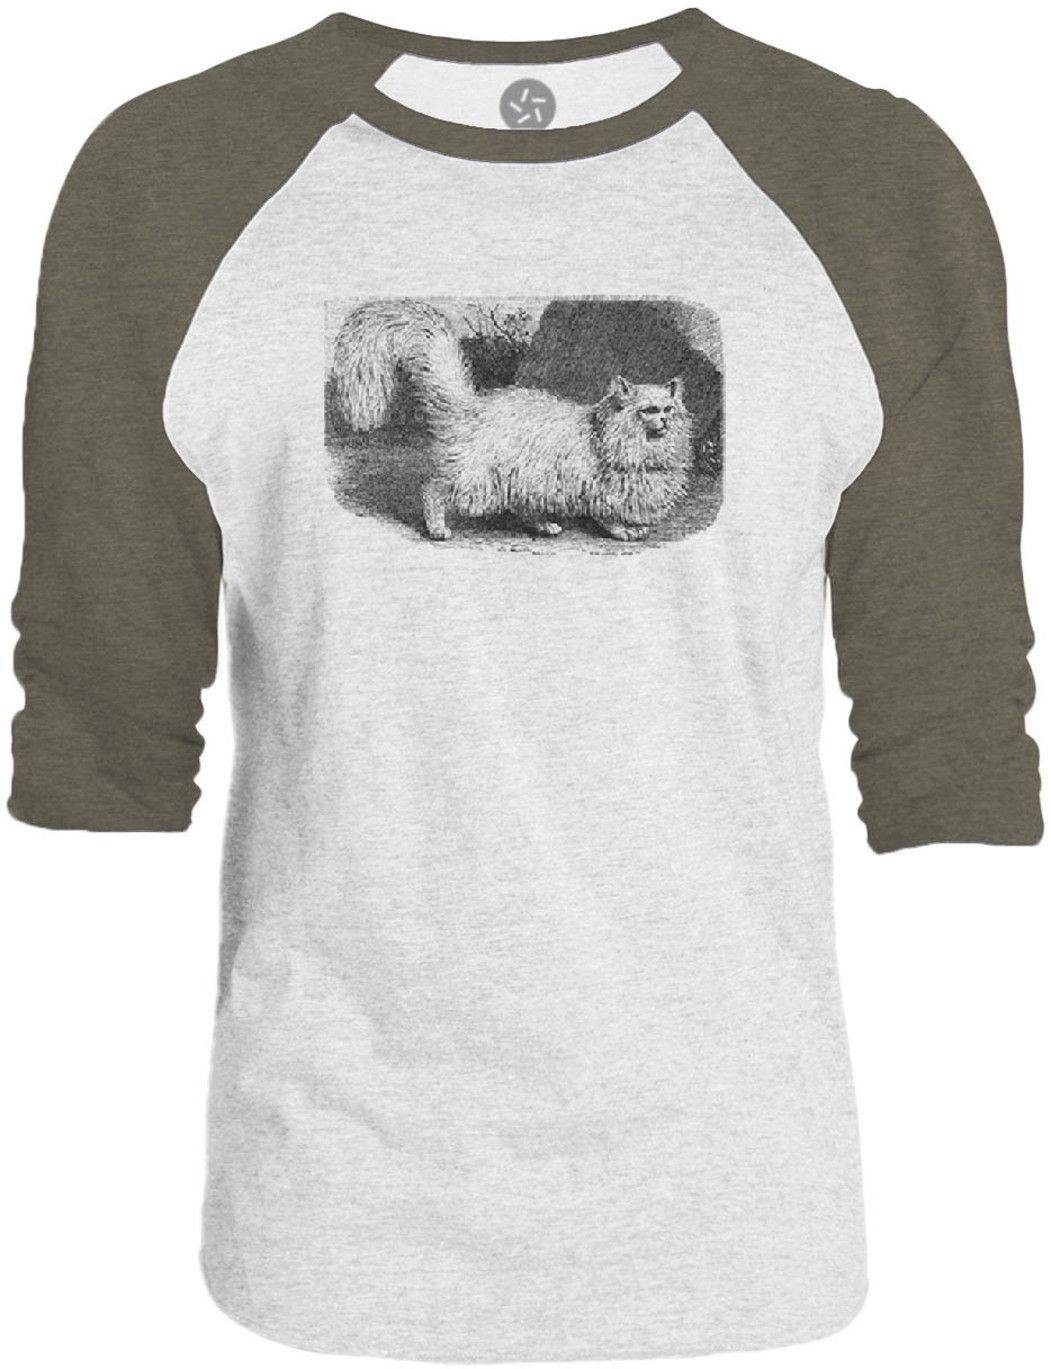 Big Texas Fluffy Kitten (Black) 3/4-Sleeve Raglan Baseball T-Shirt